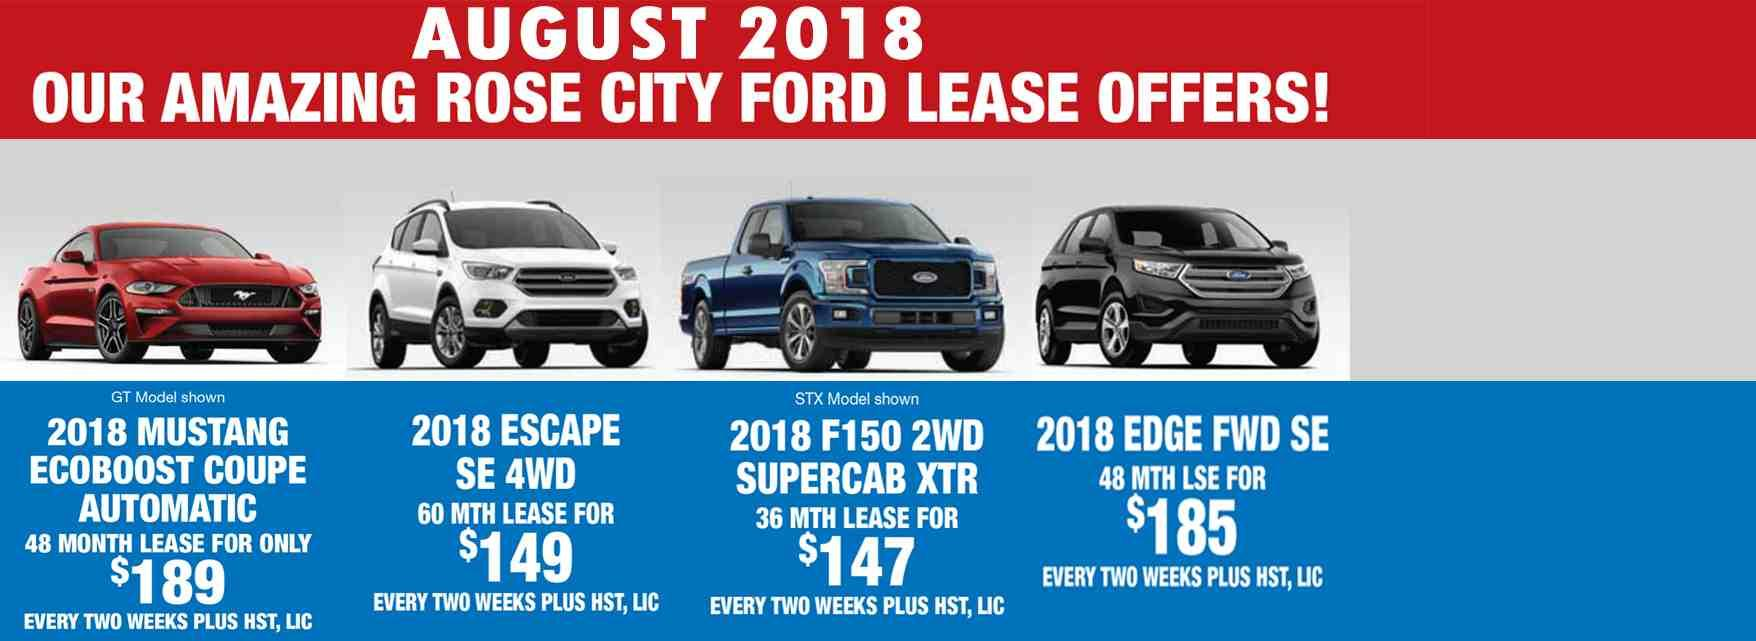 2018 Ford Mustang, 2018 Ford F-150, 2018 Ford Edge, 2018 Ford Escape